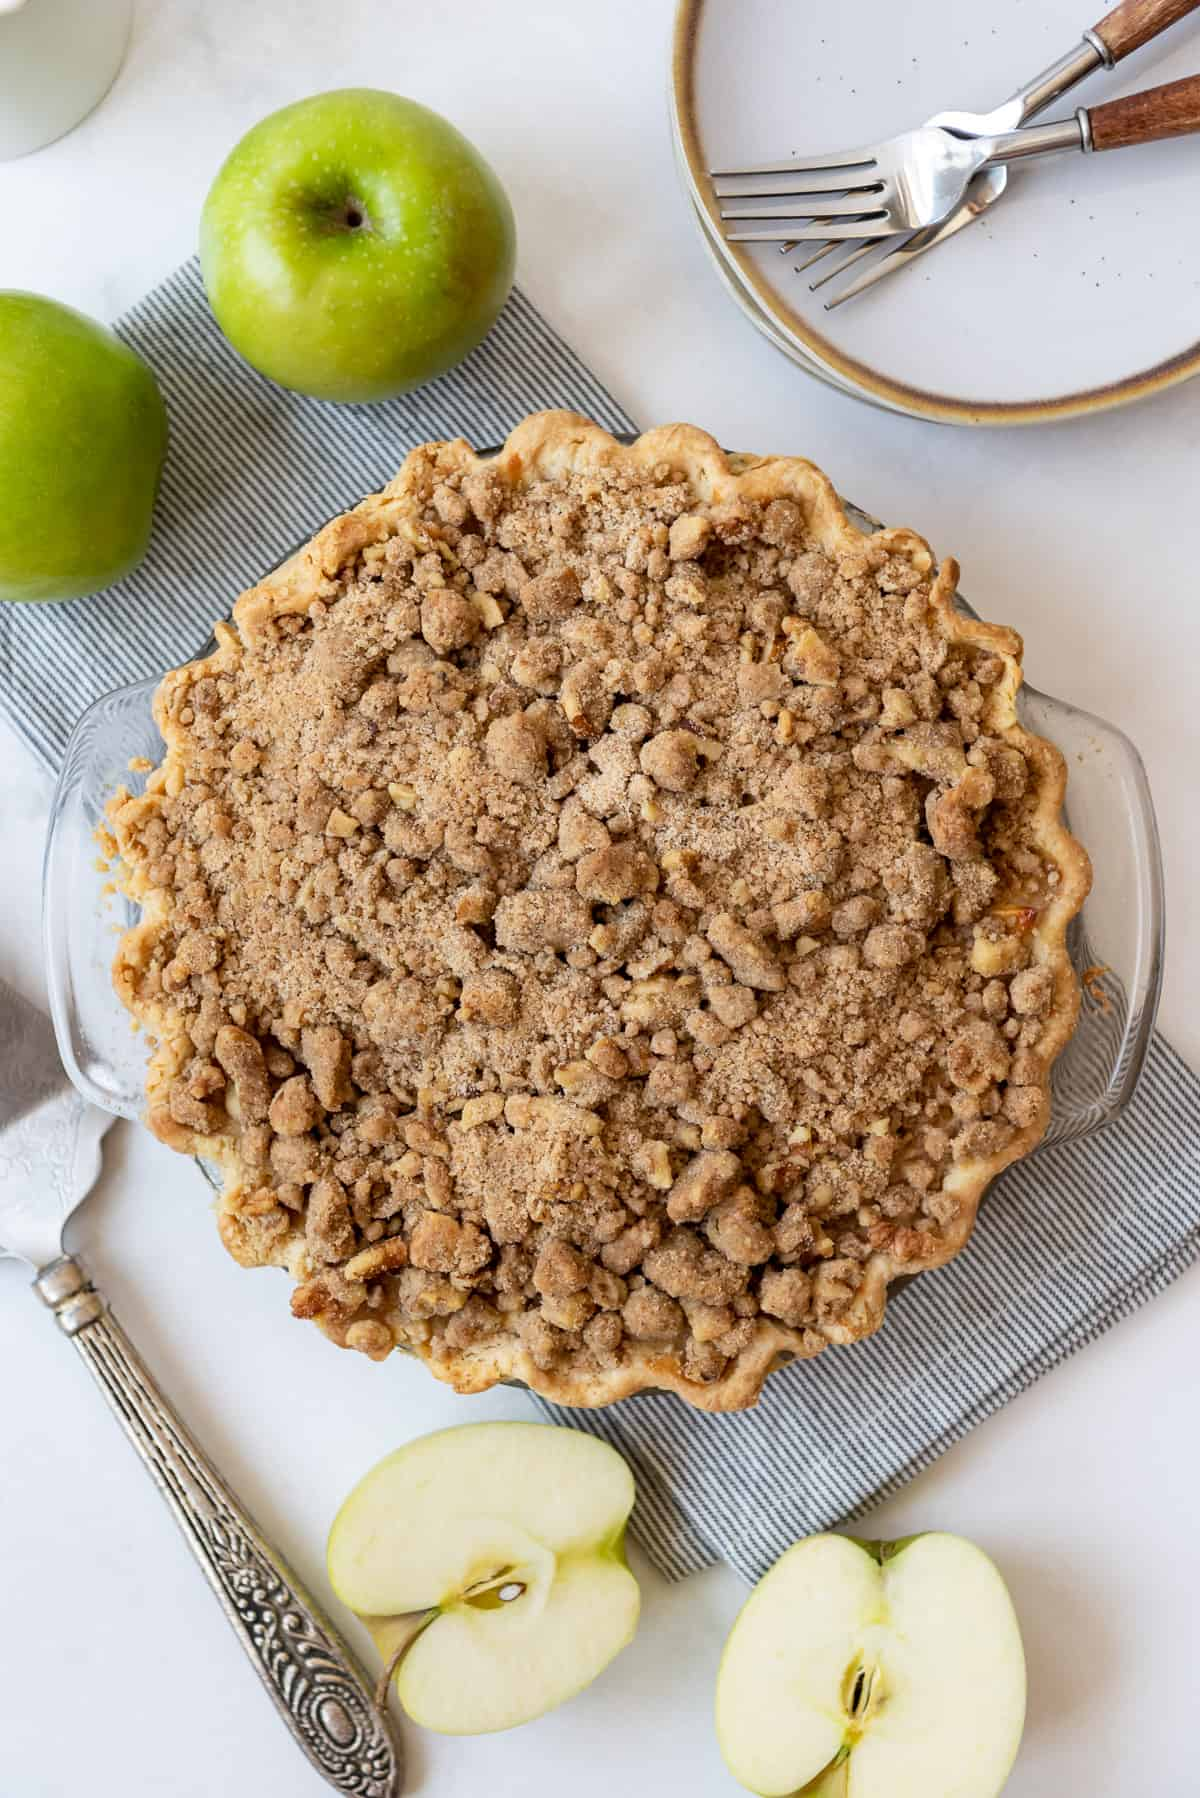 An apple pie topped with a brown sugar walnut streusel topping on a striped napkin.